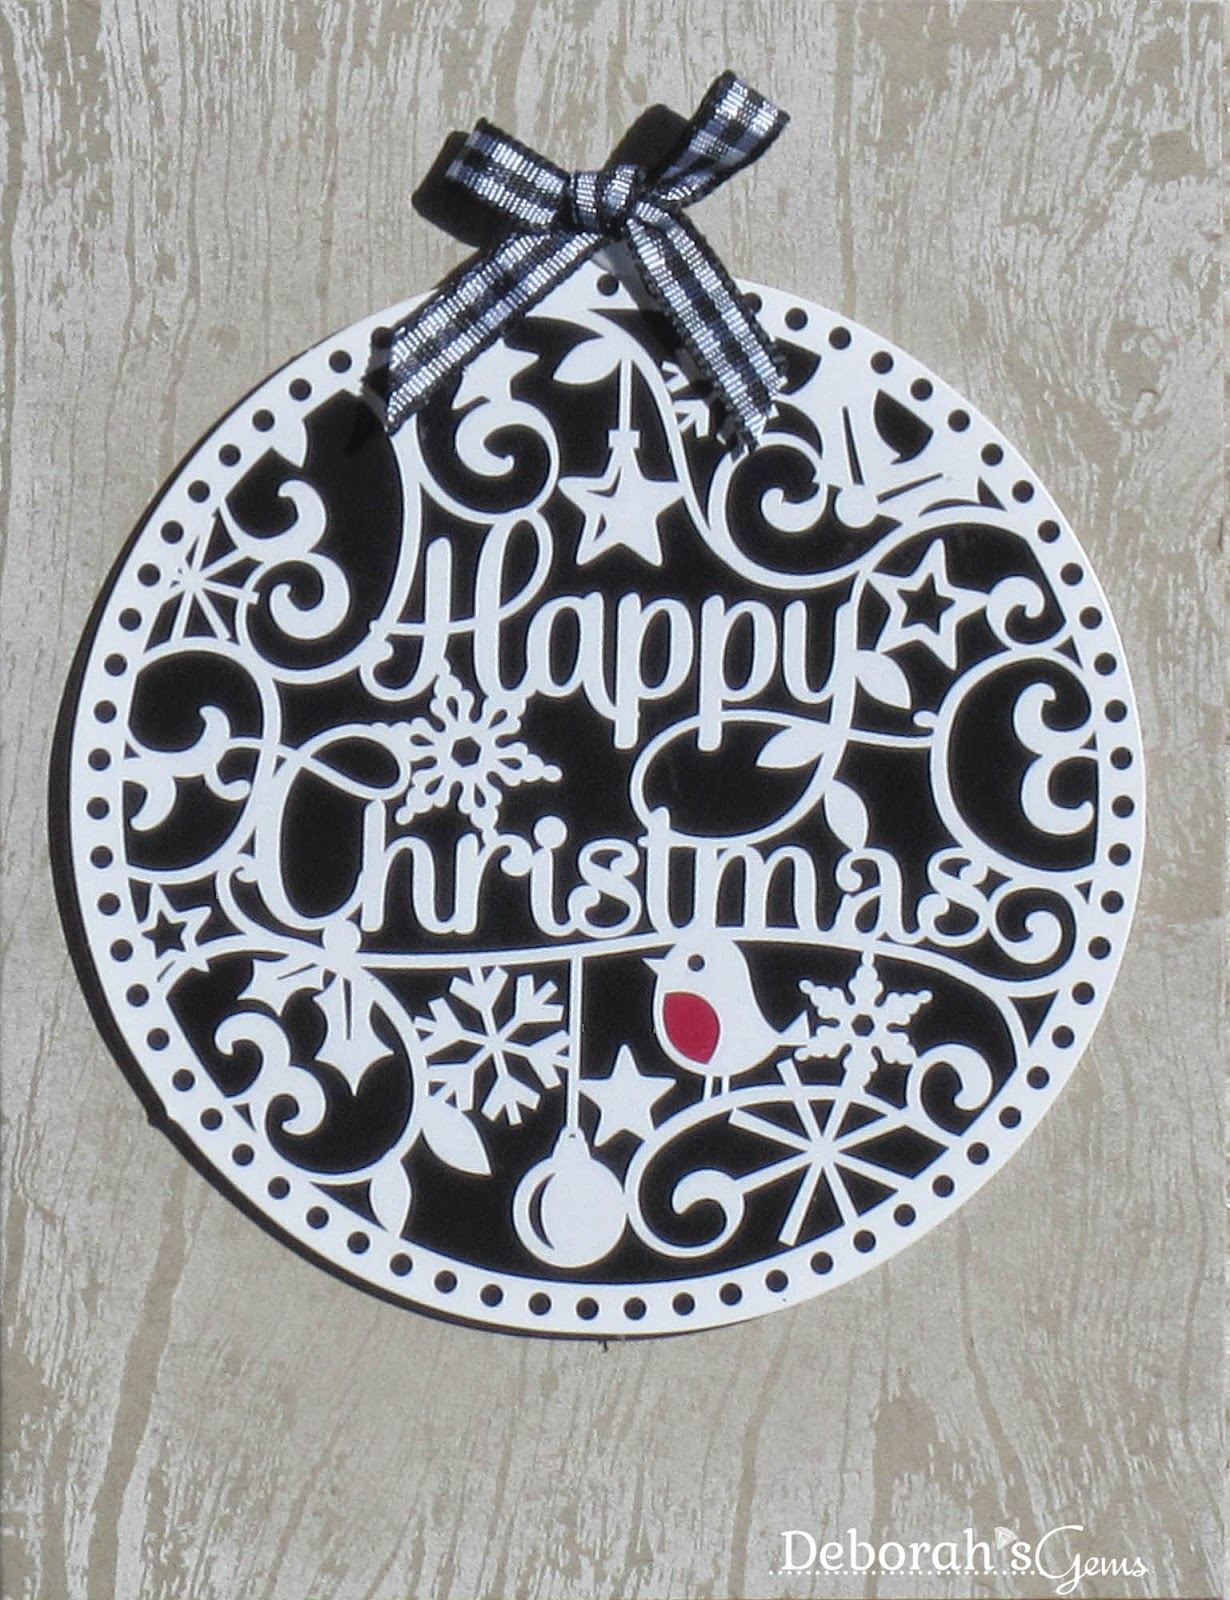 Happy Christmas - photo by Deborah Frings - Deborah's Gems